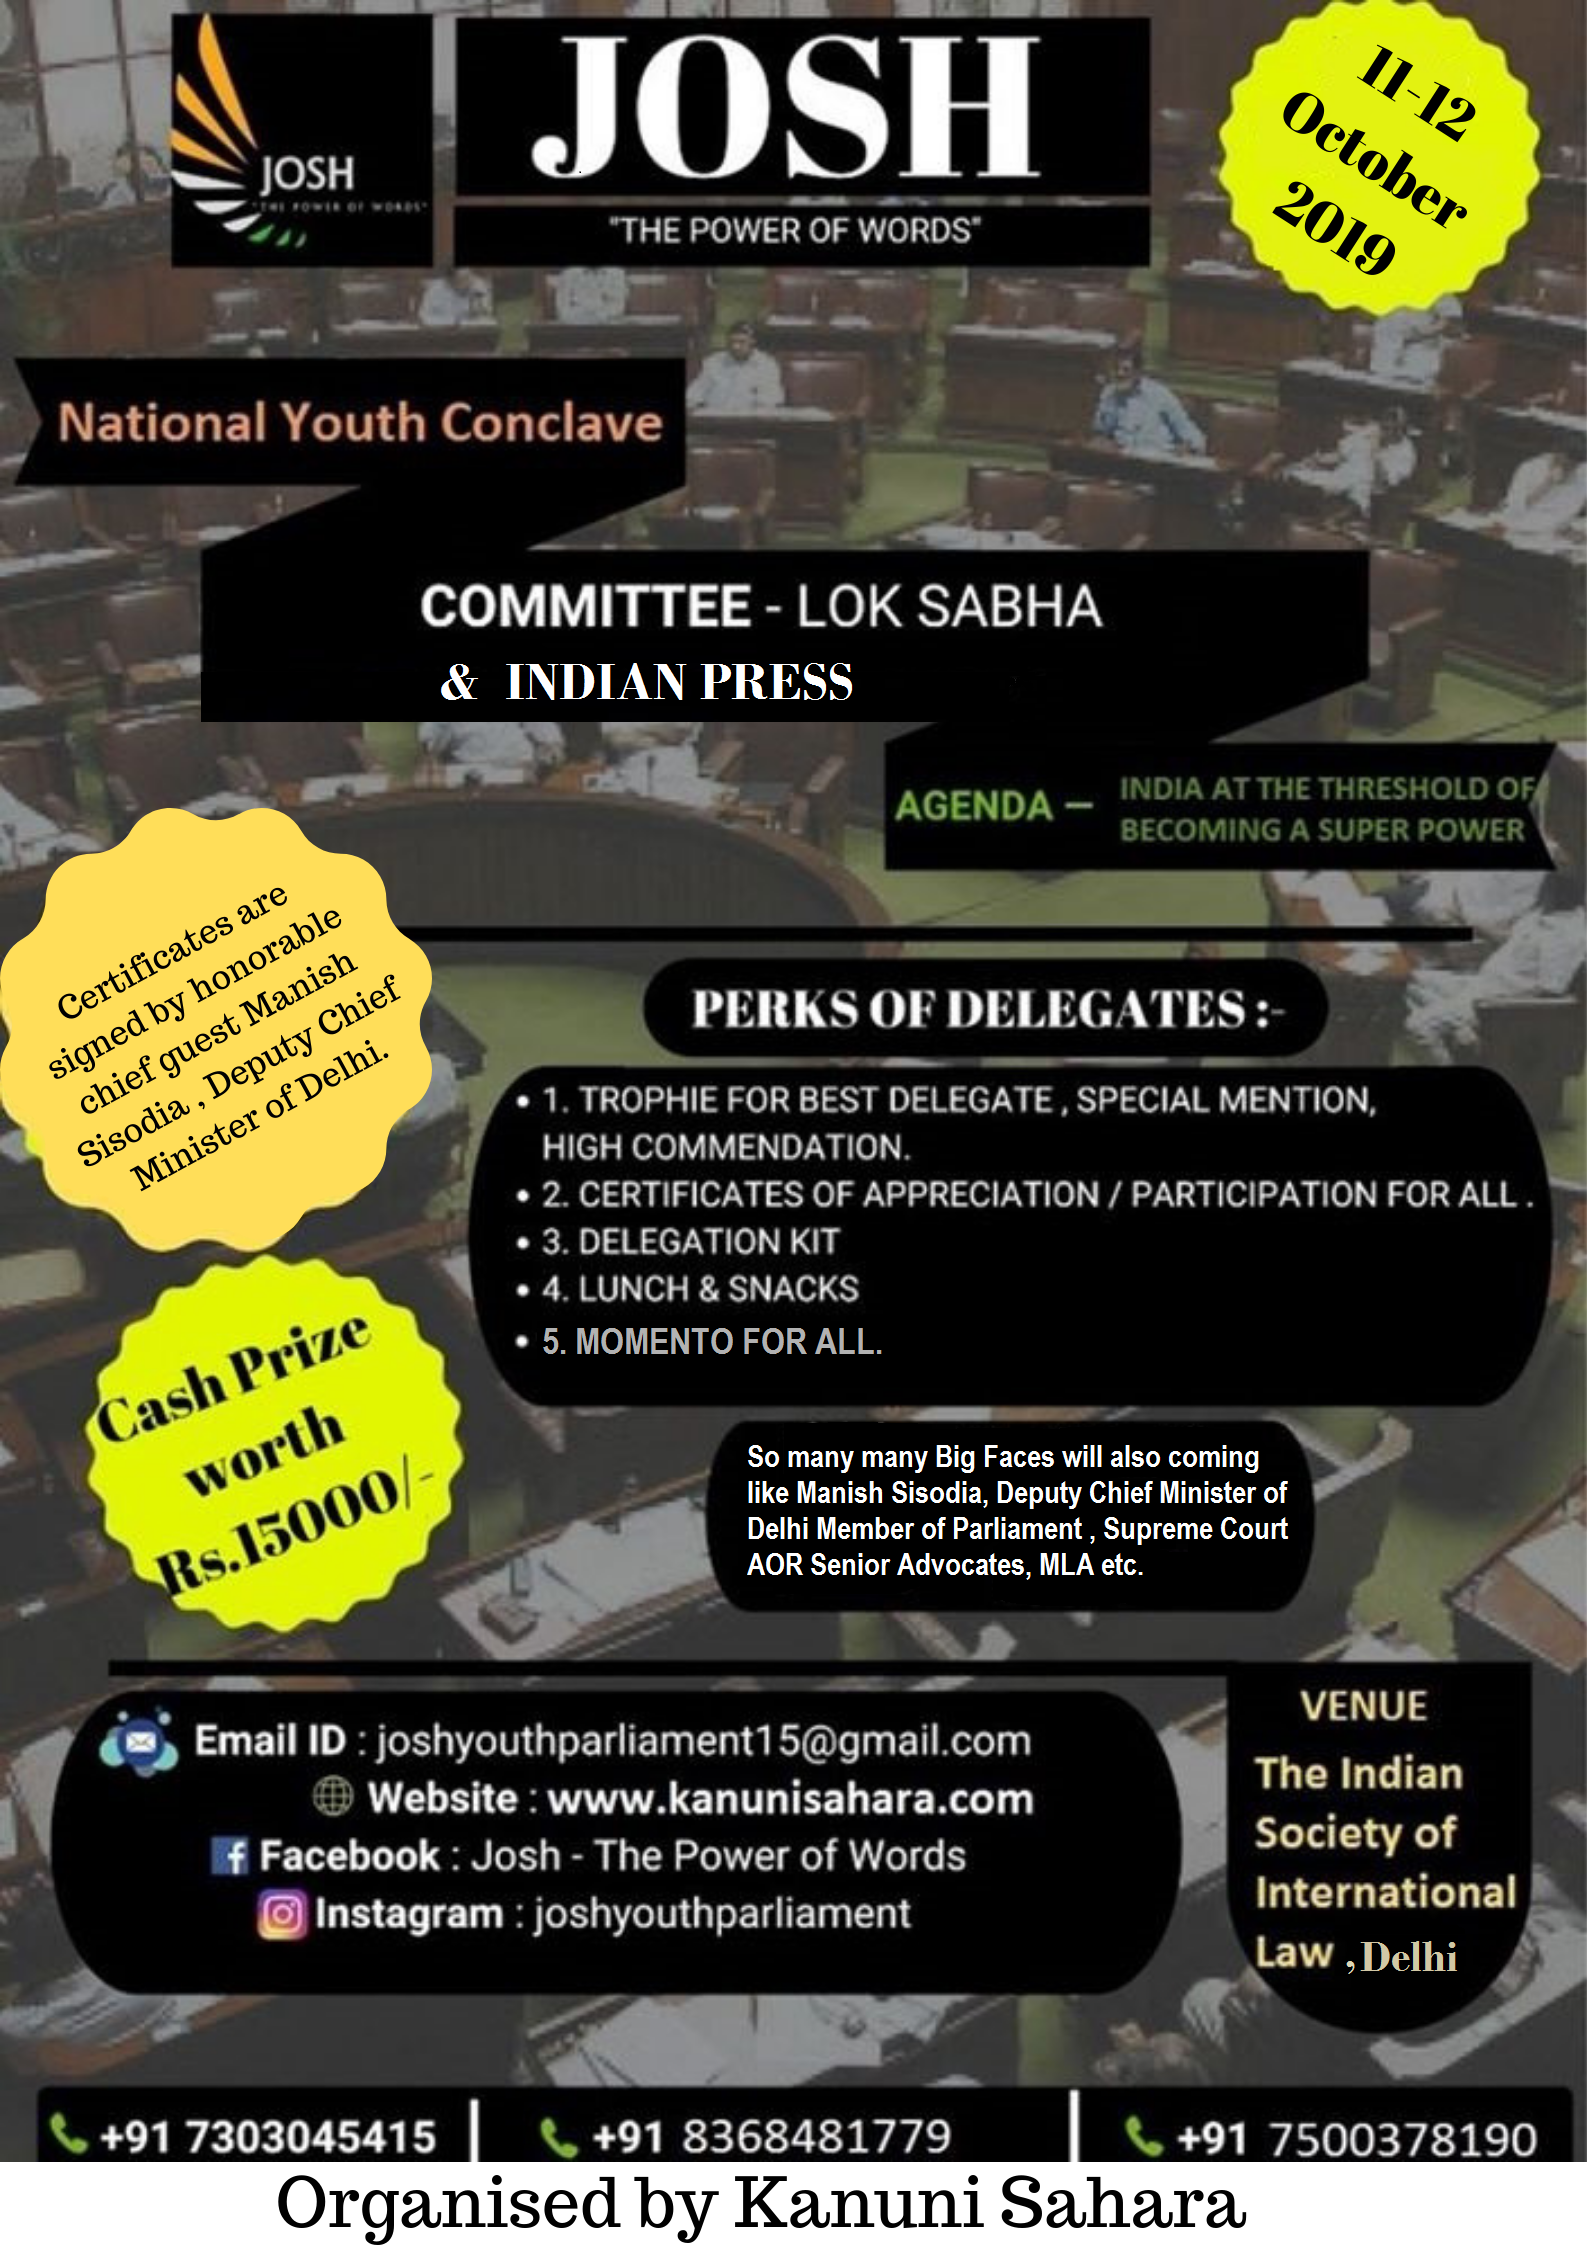 National Youth Conclave by Kanuni Sahara